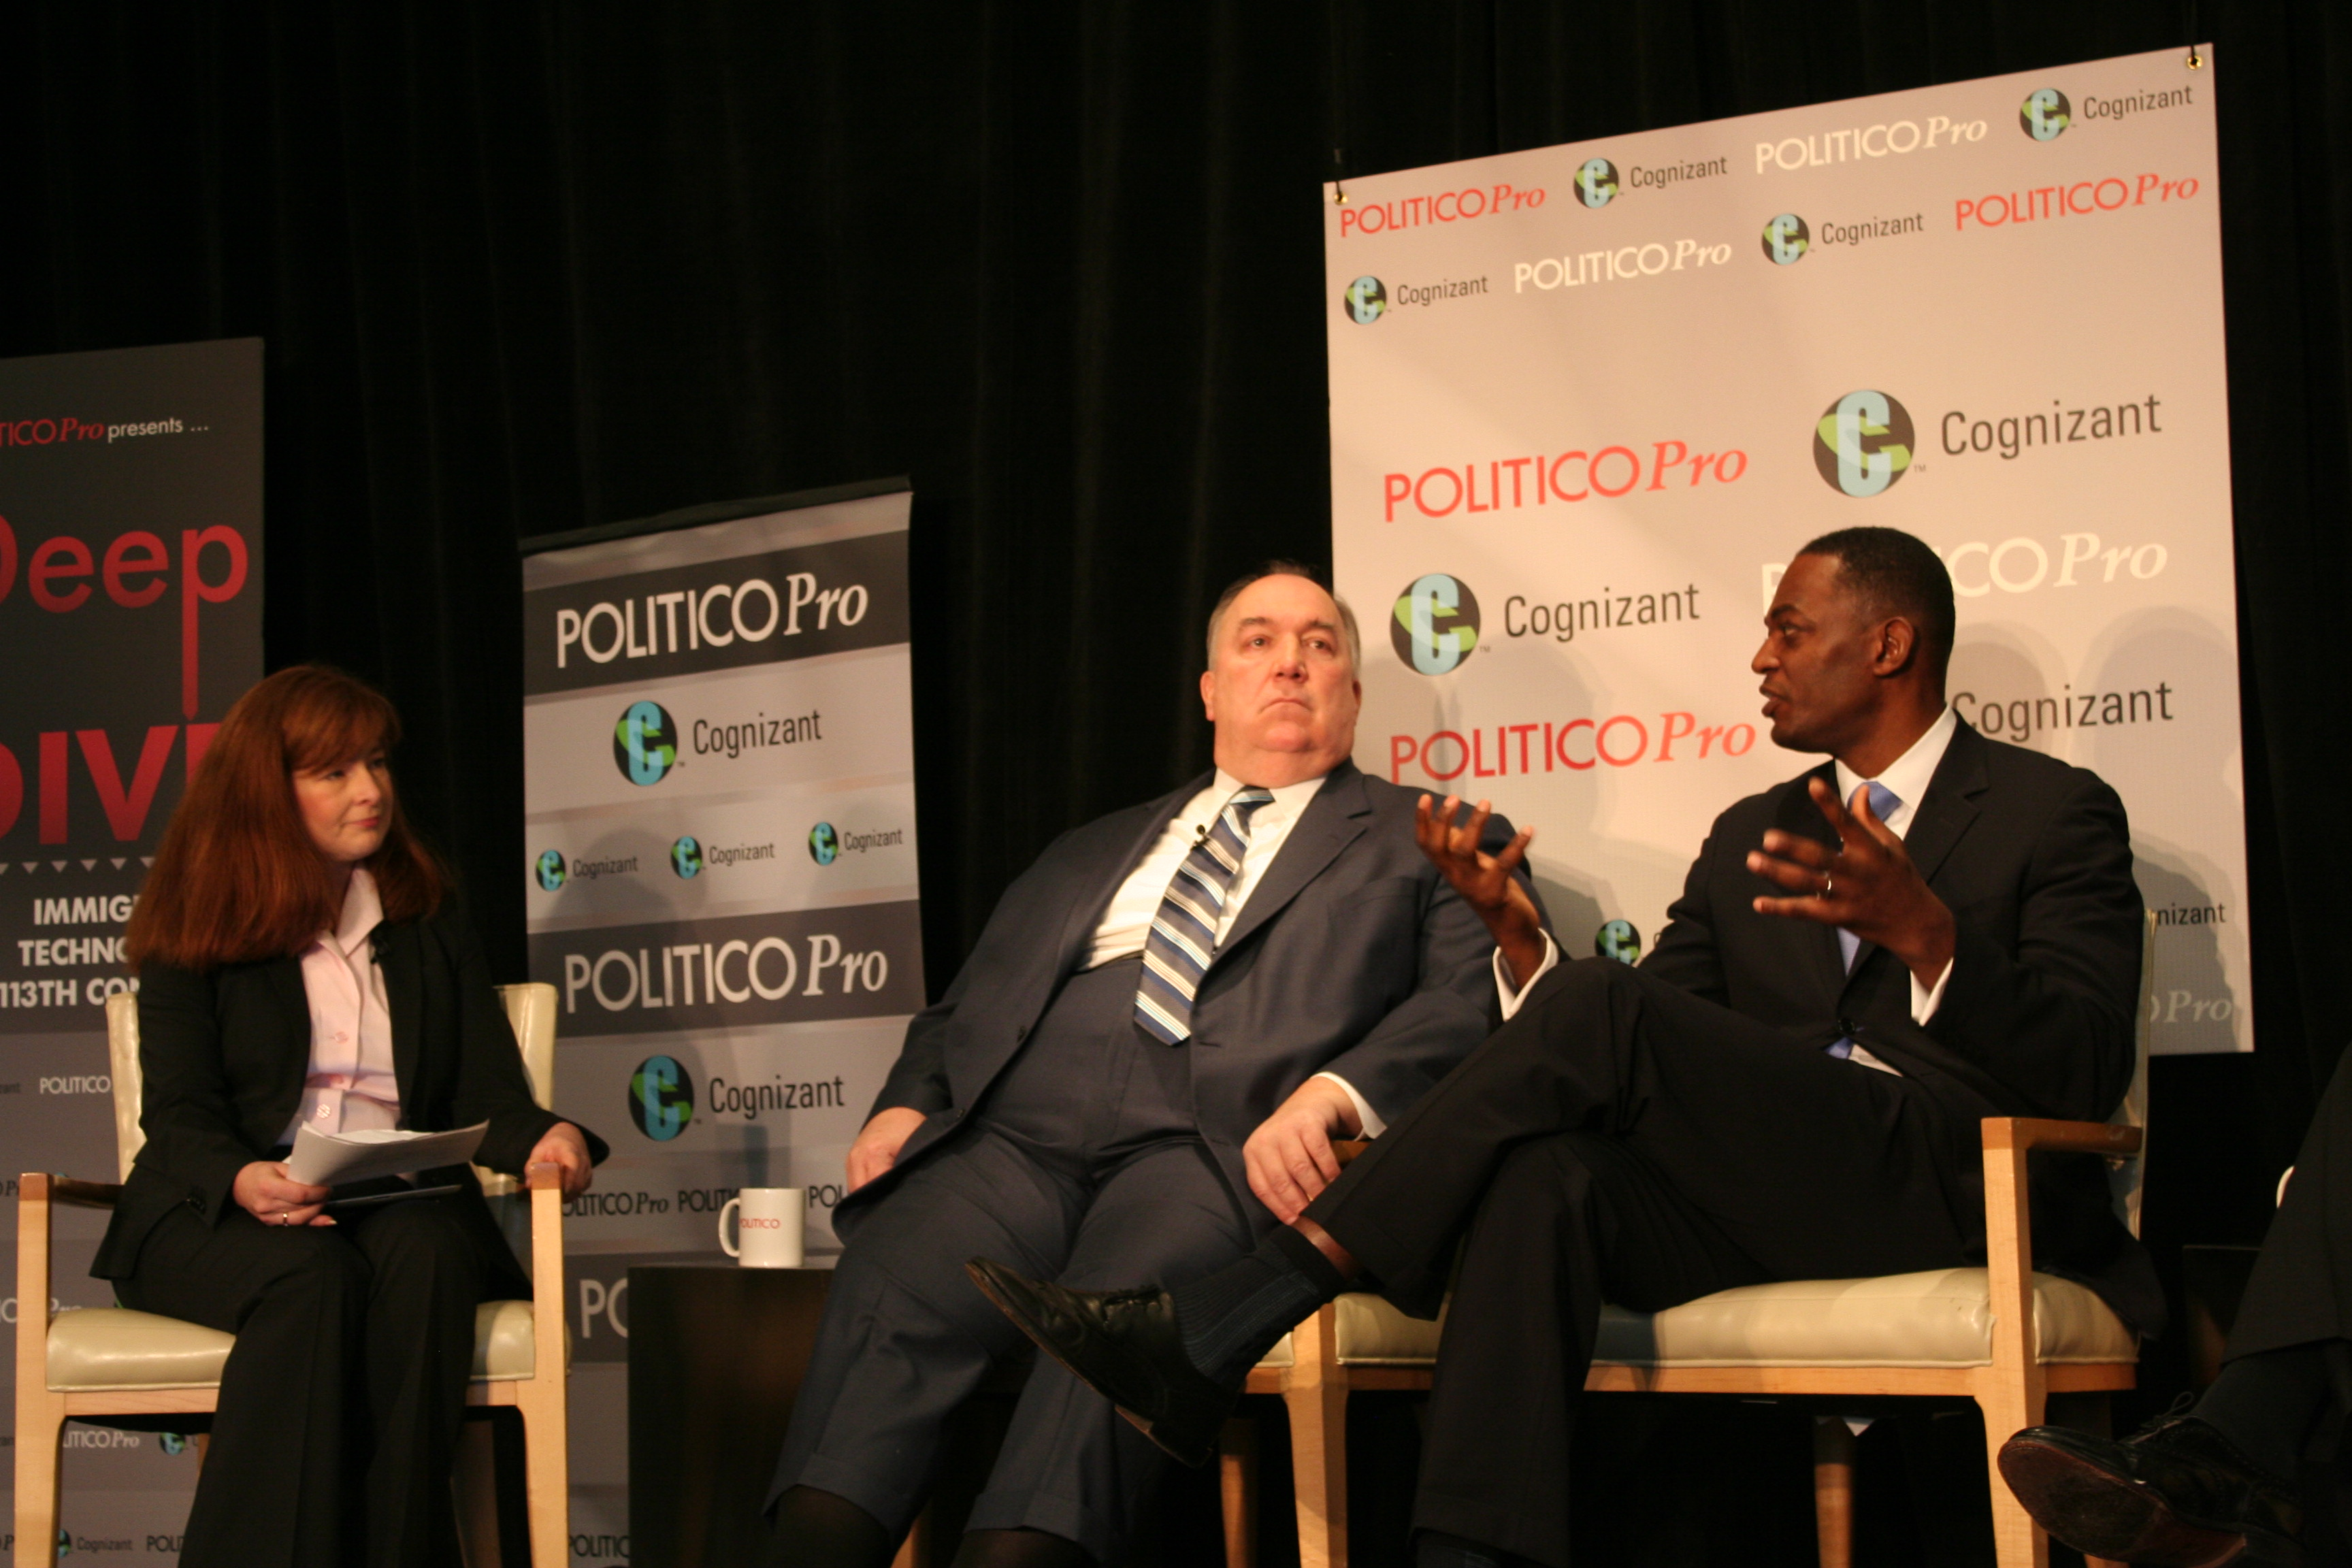 ITI's Dean Garfield (right) speaks at the Cognizant-Politico Pro event on immigration reform.